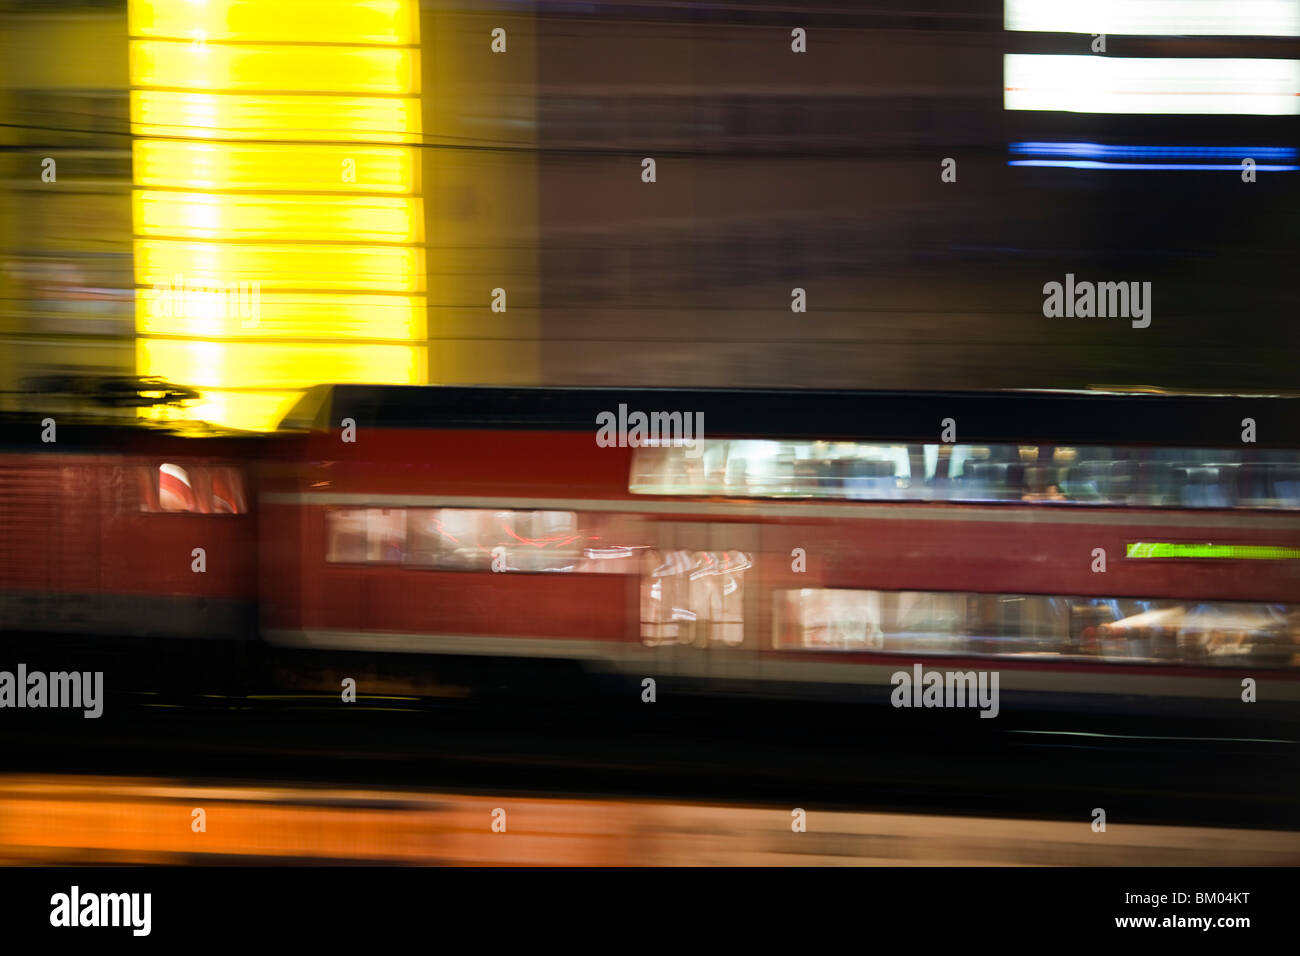 Panning shot of a train by night, Berlin, Germany - Stock Image